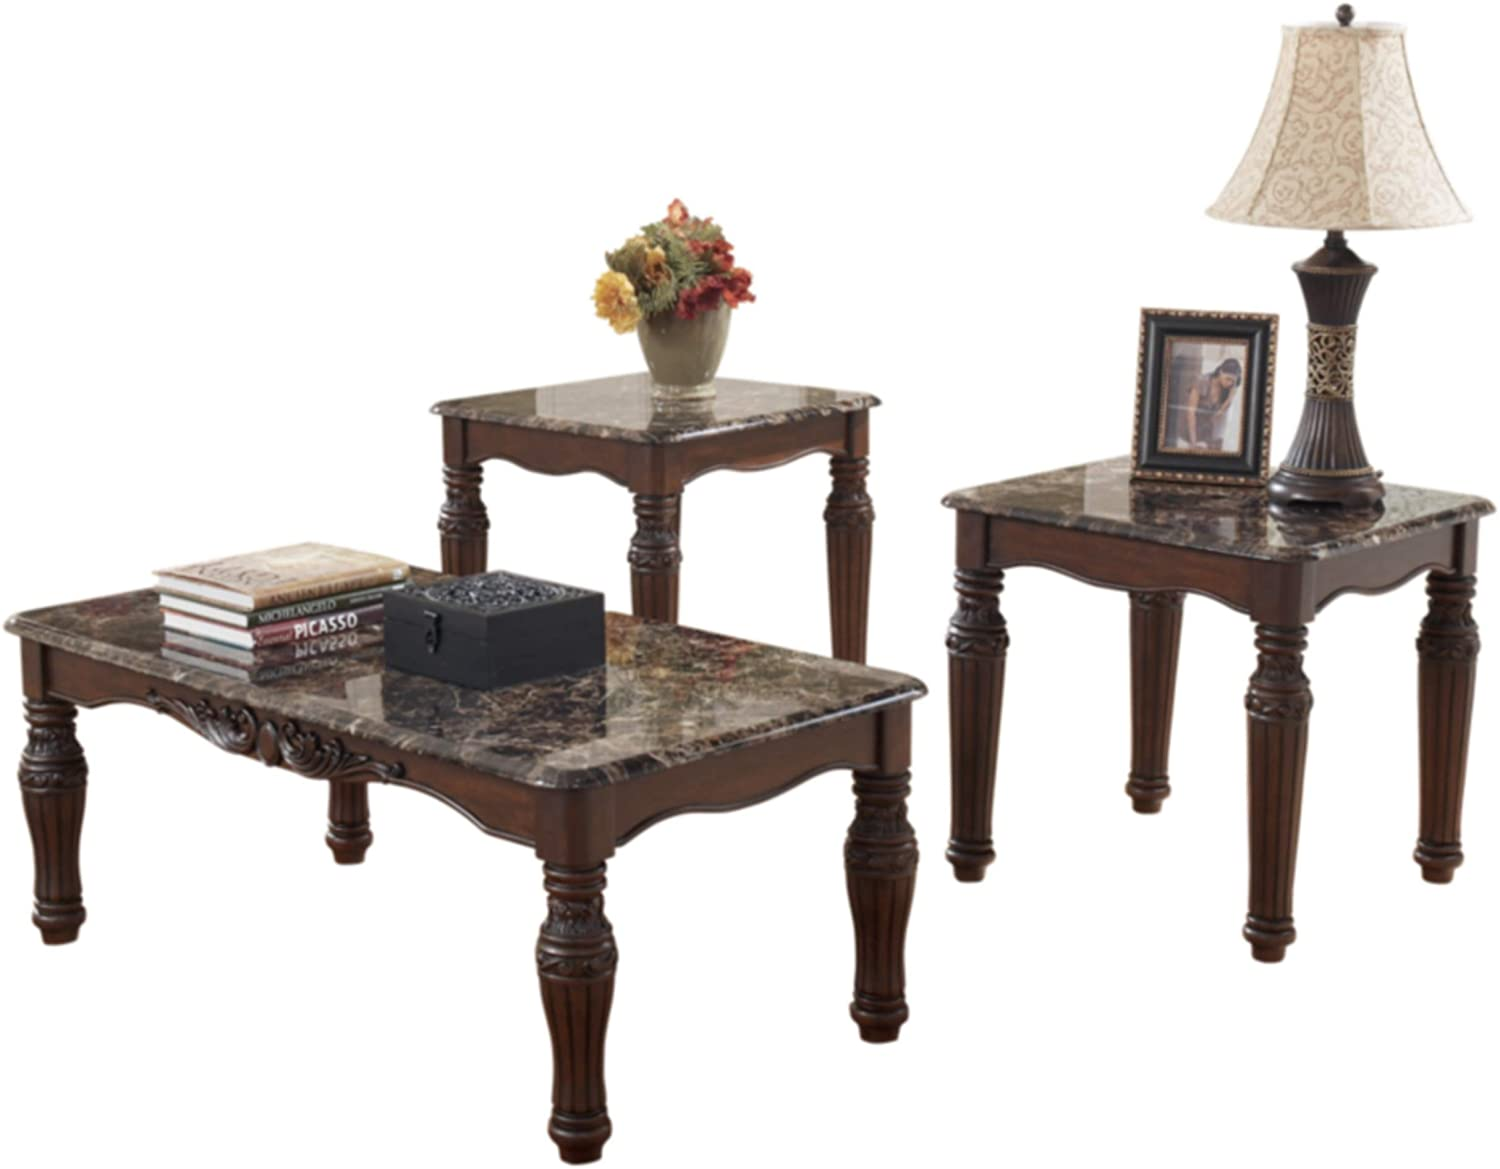 Amazon Com Signature Design By Ashley Traditional Faux Marble Top 3 Piece Table Set Coffee Table And 2 End Tables Dark Brown Furniture Decor